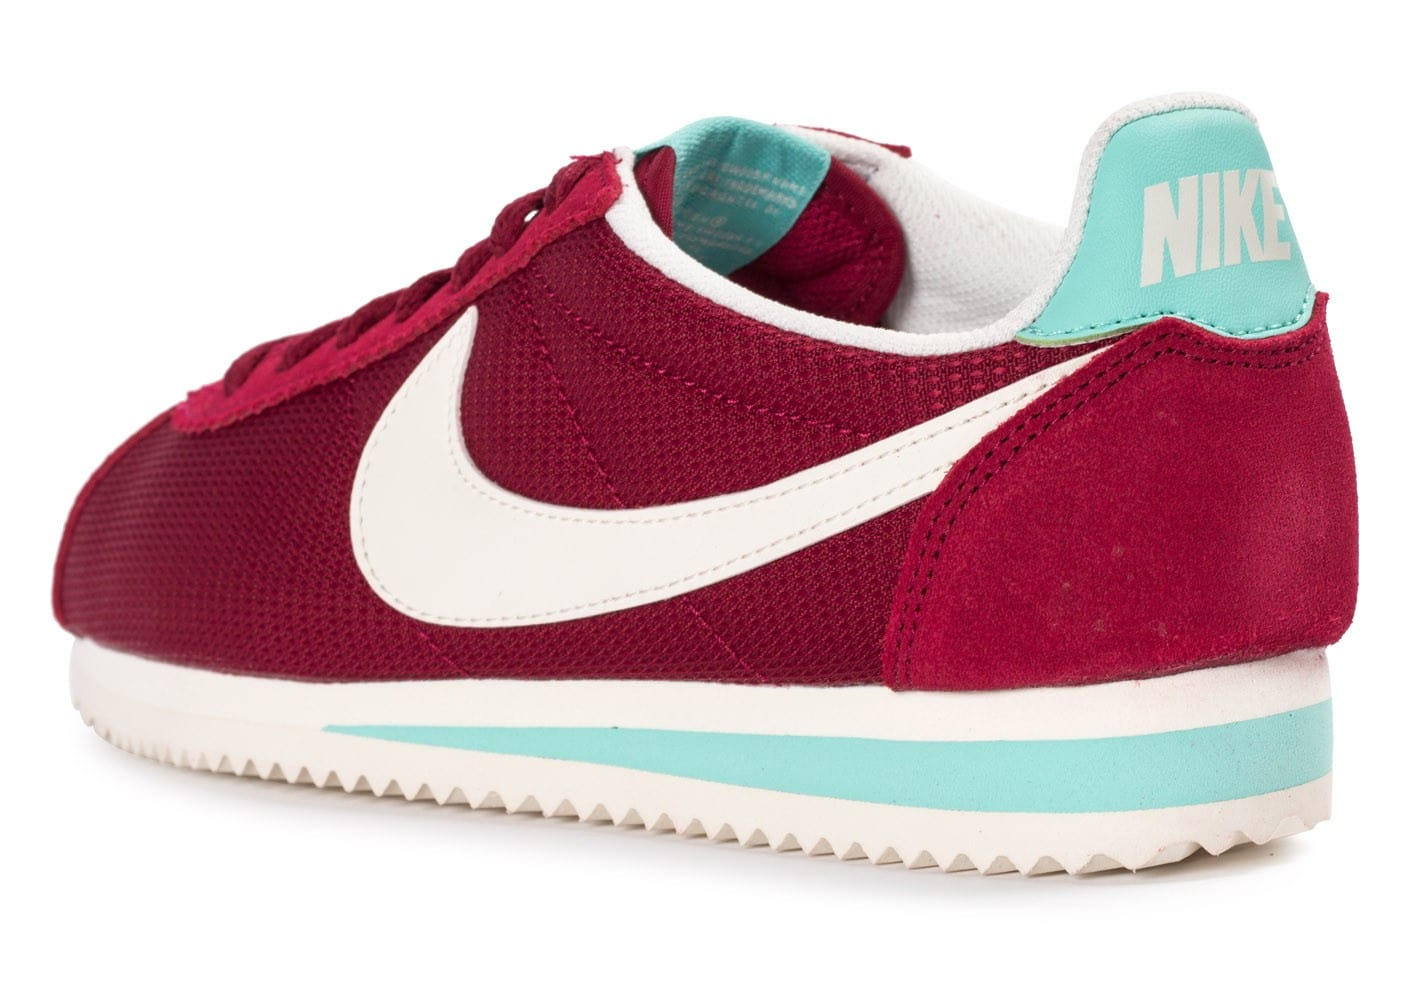 nike cortez txt bordeaux chaussures chaussures chausport. Black Bedroom Furniture Sets. Home Design Ideas